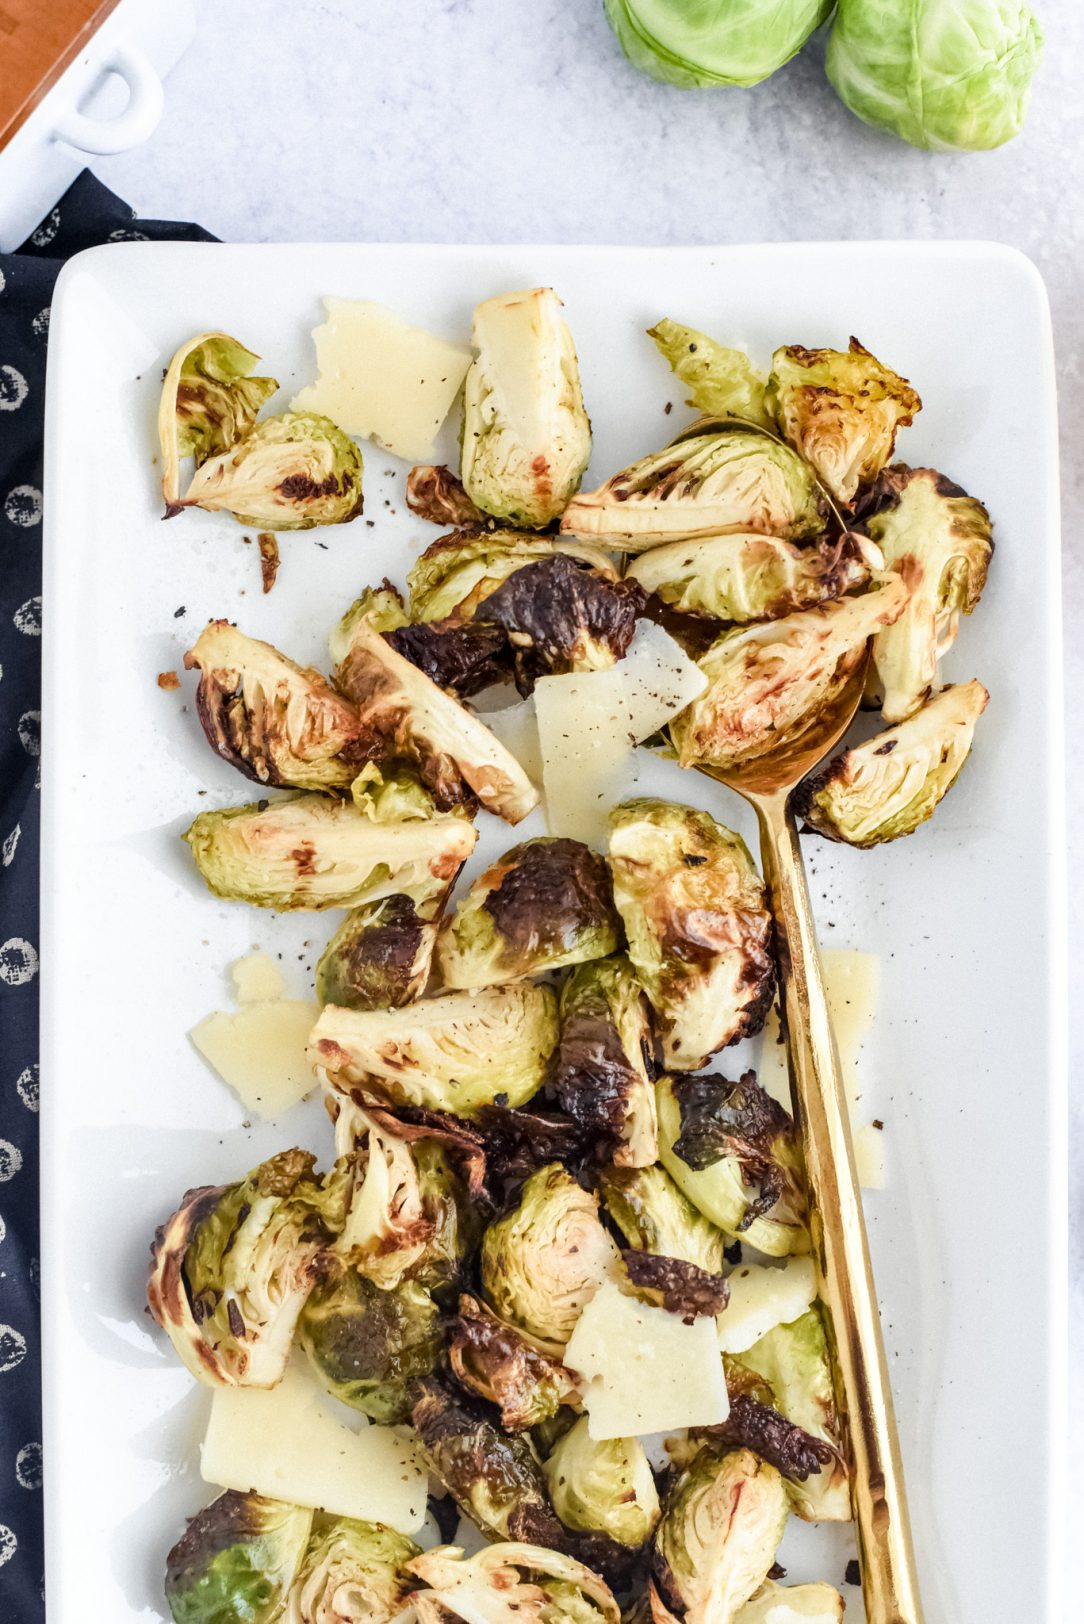 brussels sprouts spread out on plate with cheese